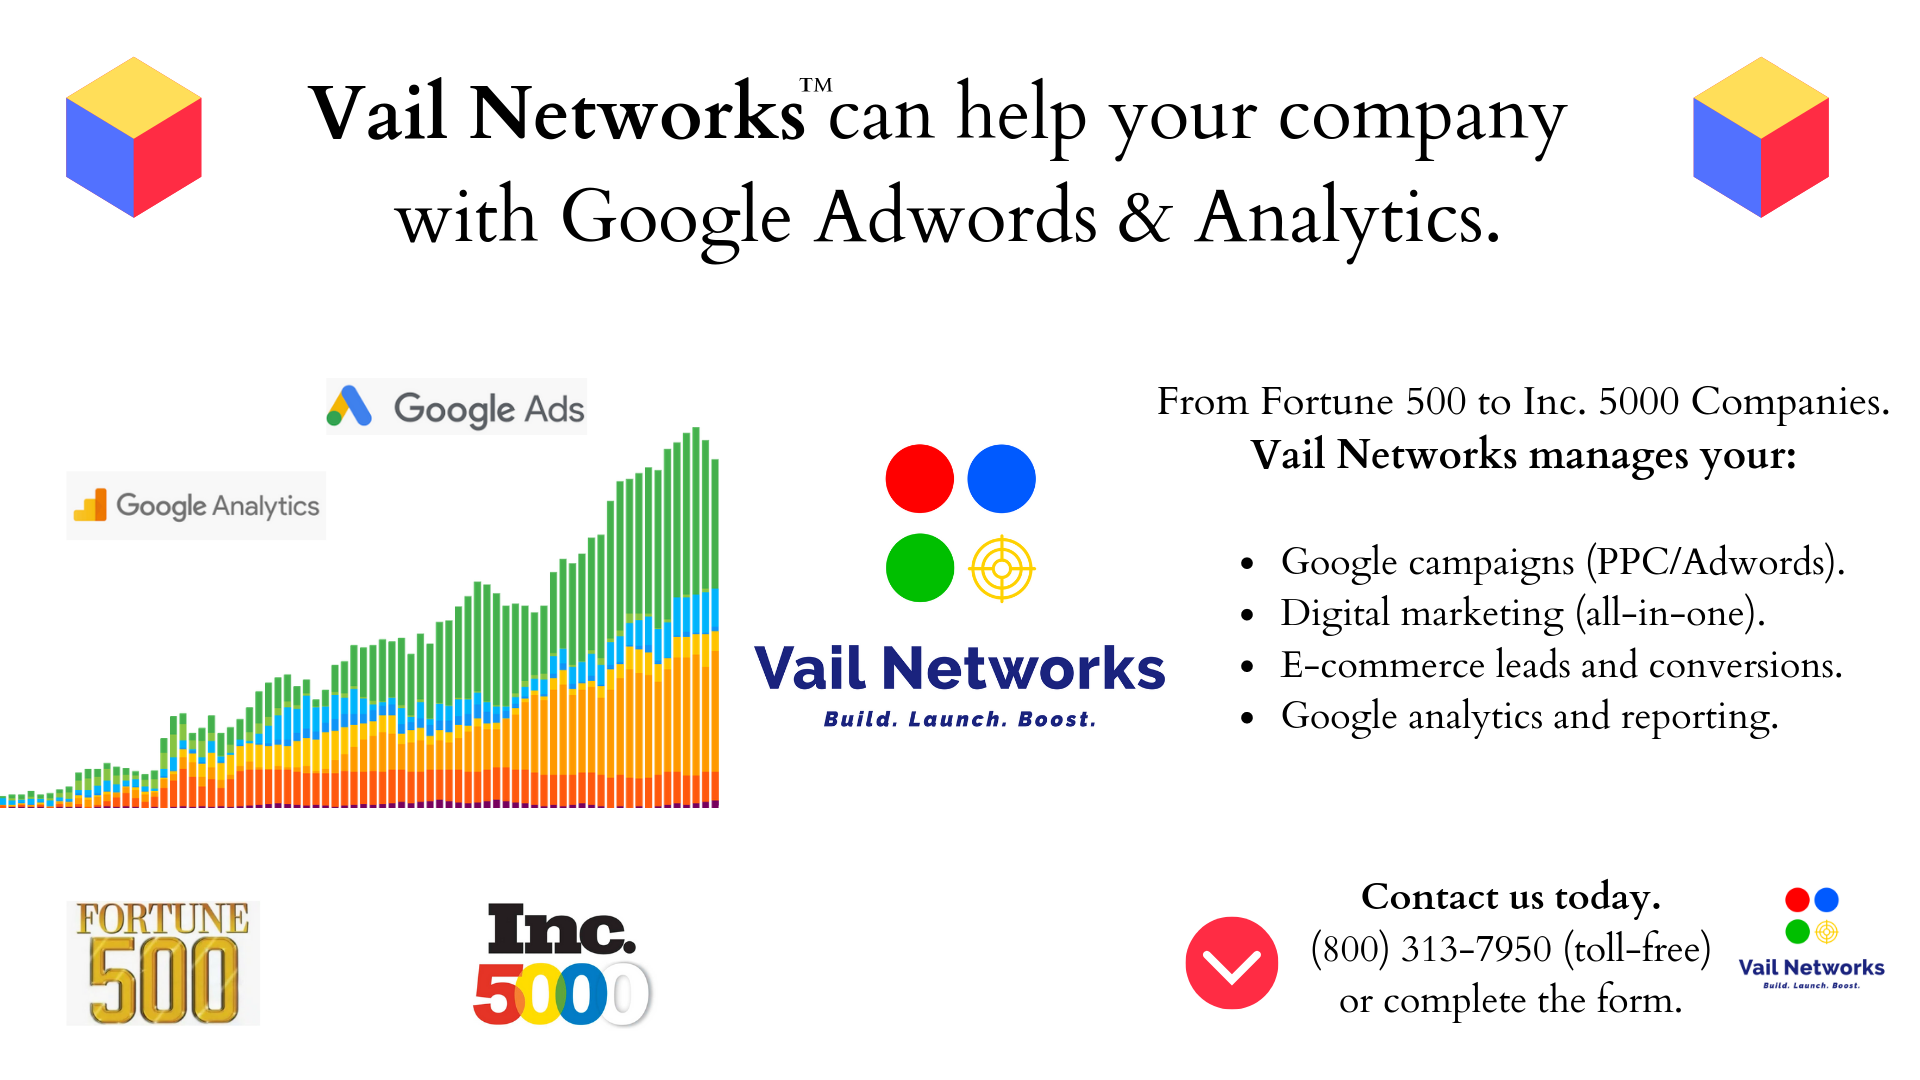 company to help with google adwords and analytics: vailnetworks.com